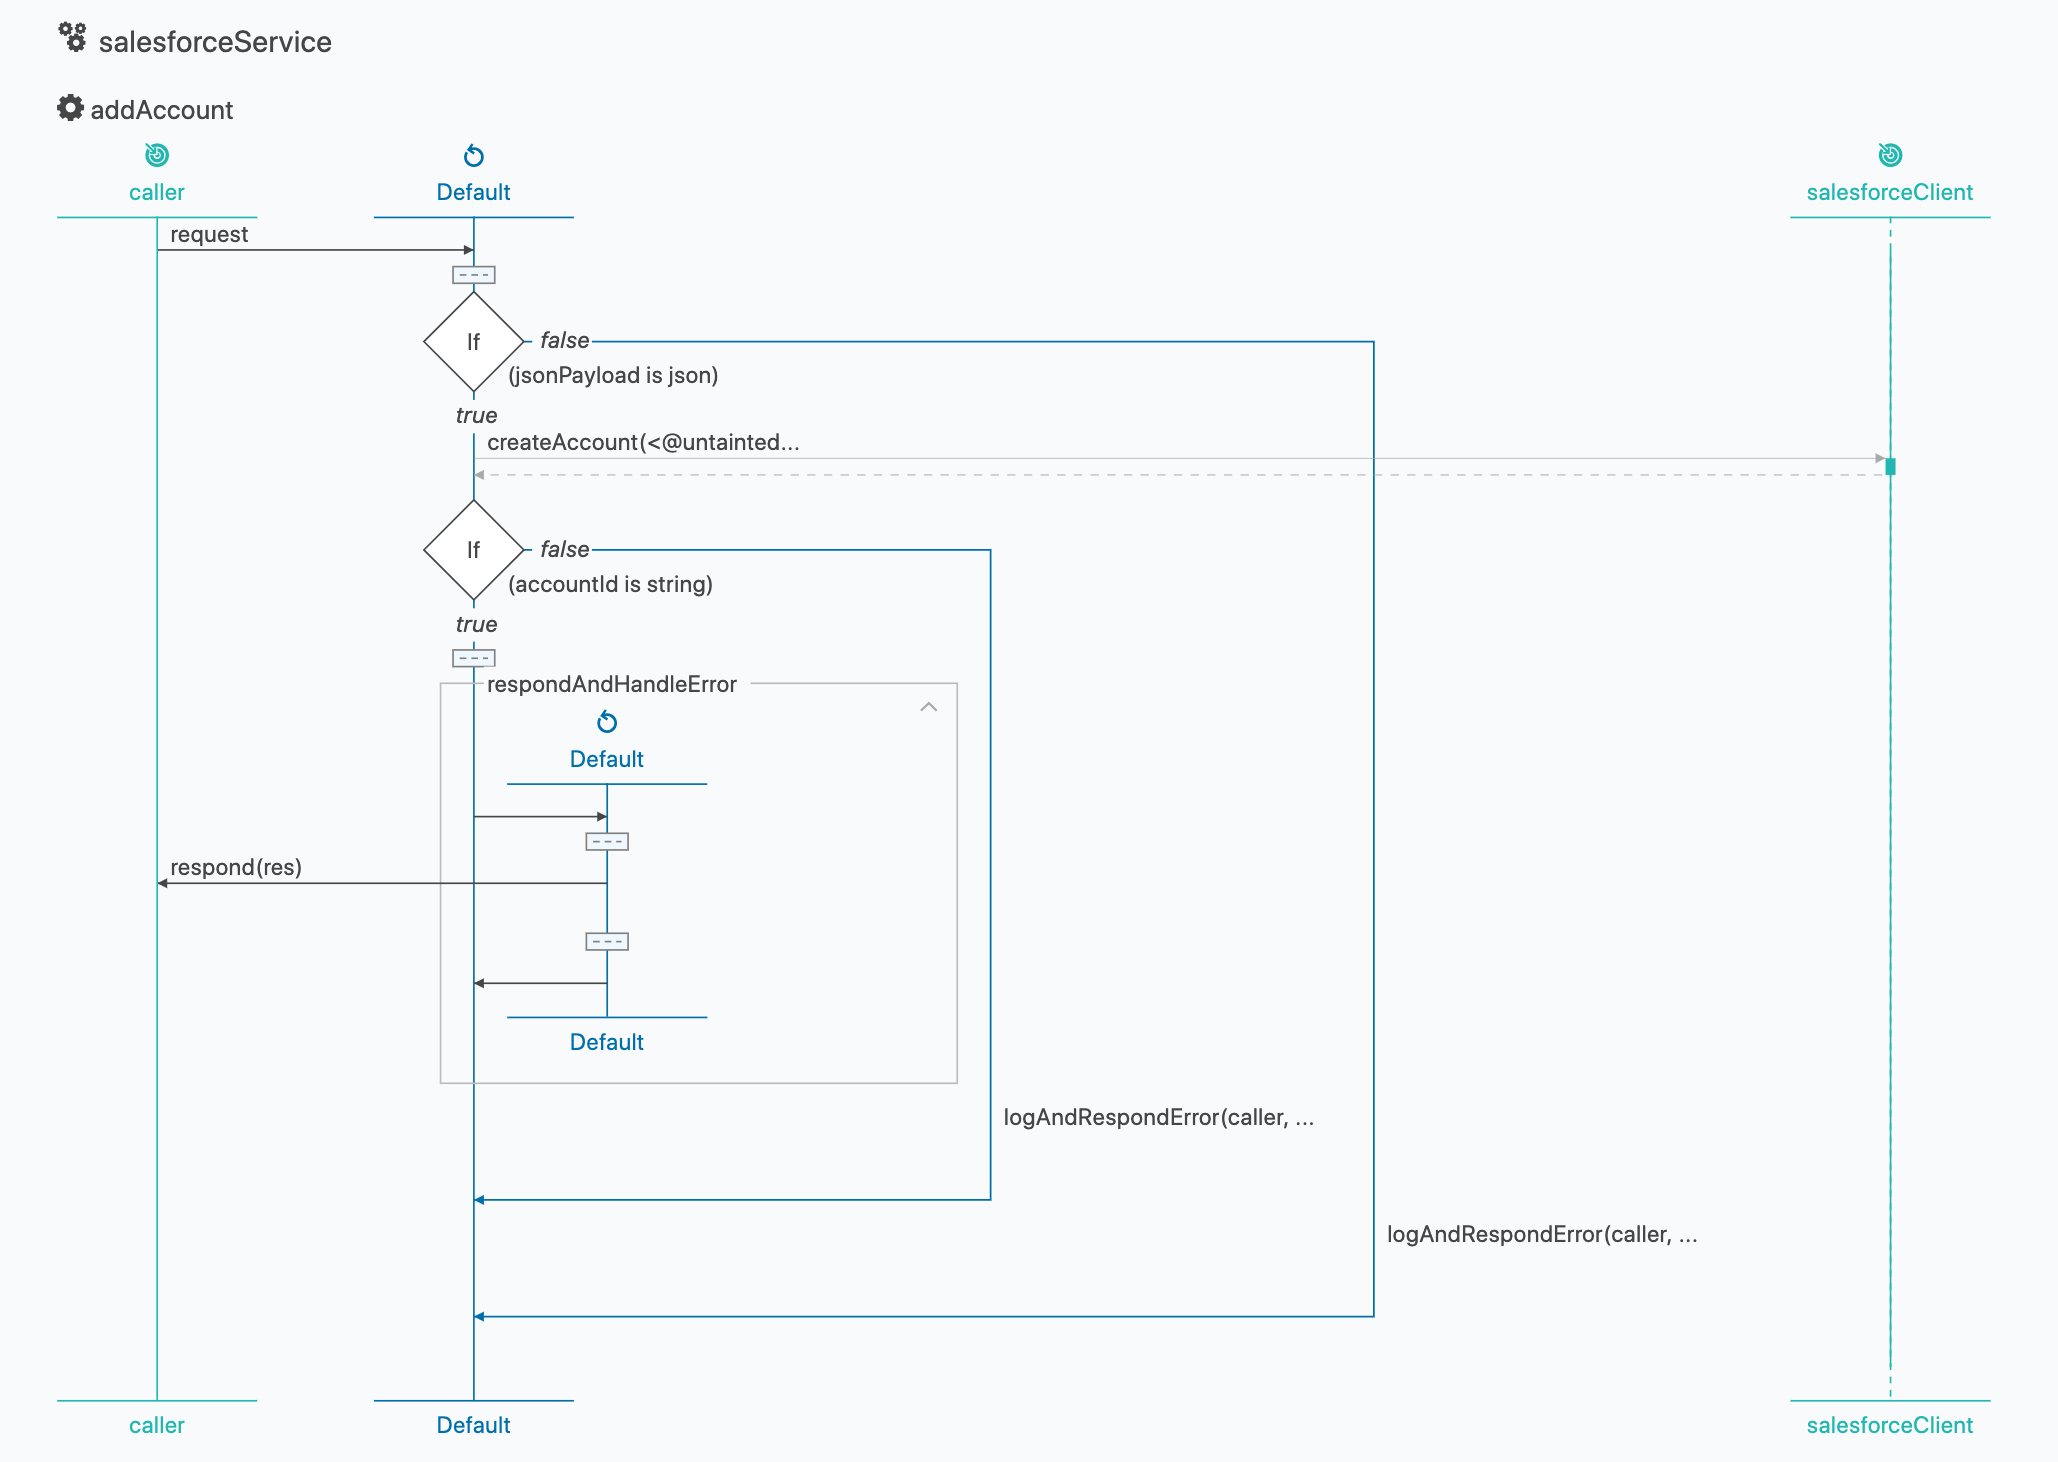 Salesforce integration microservice Ballerina sequence diagram